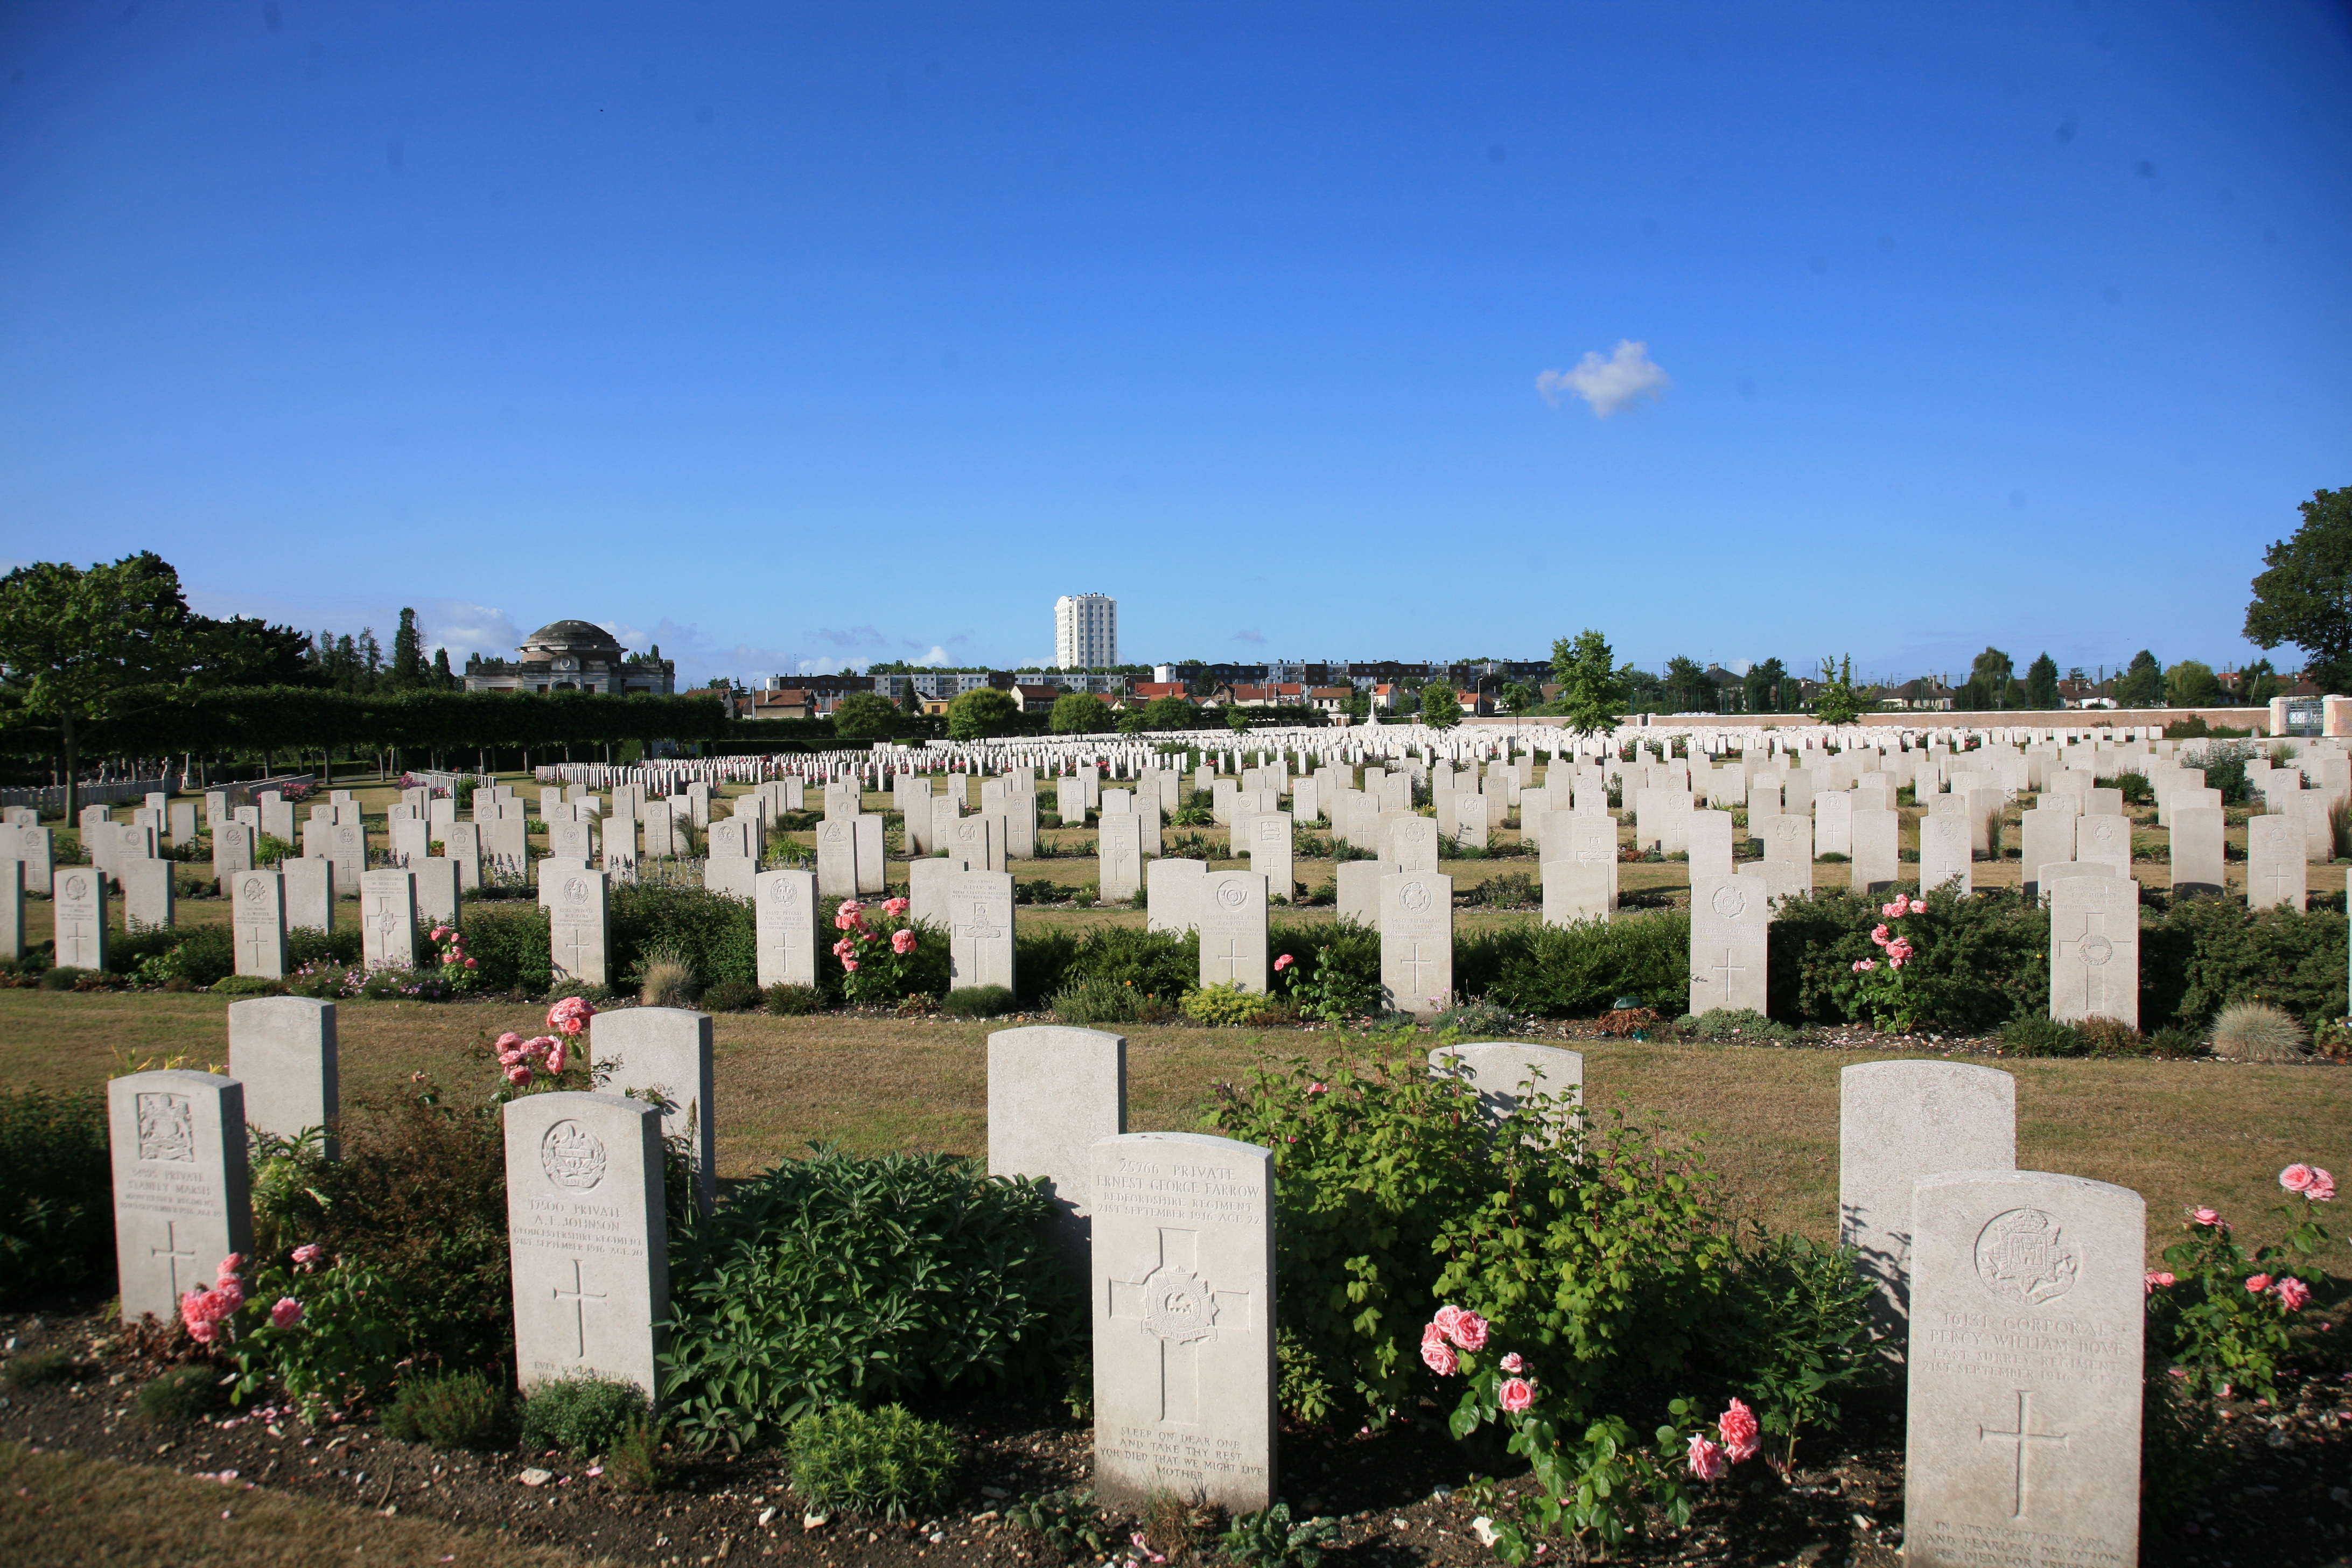 St Sever Extension Cemetery, Rouen, The Great War Photographic Project